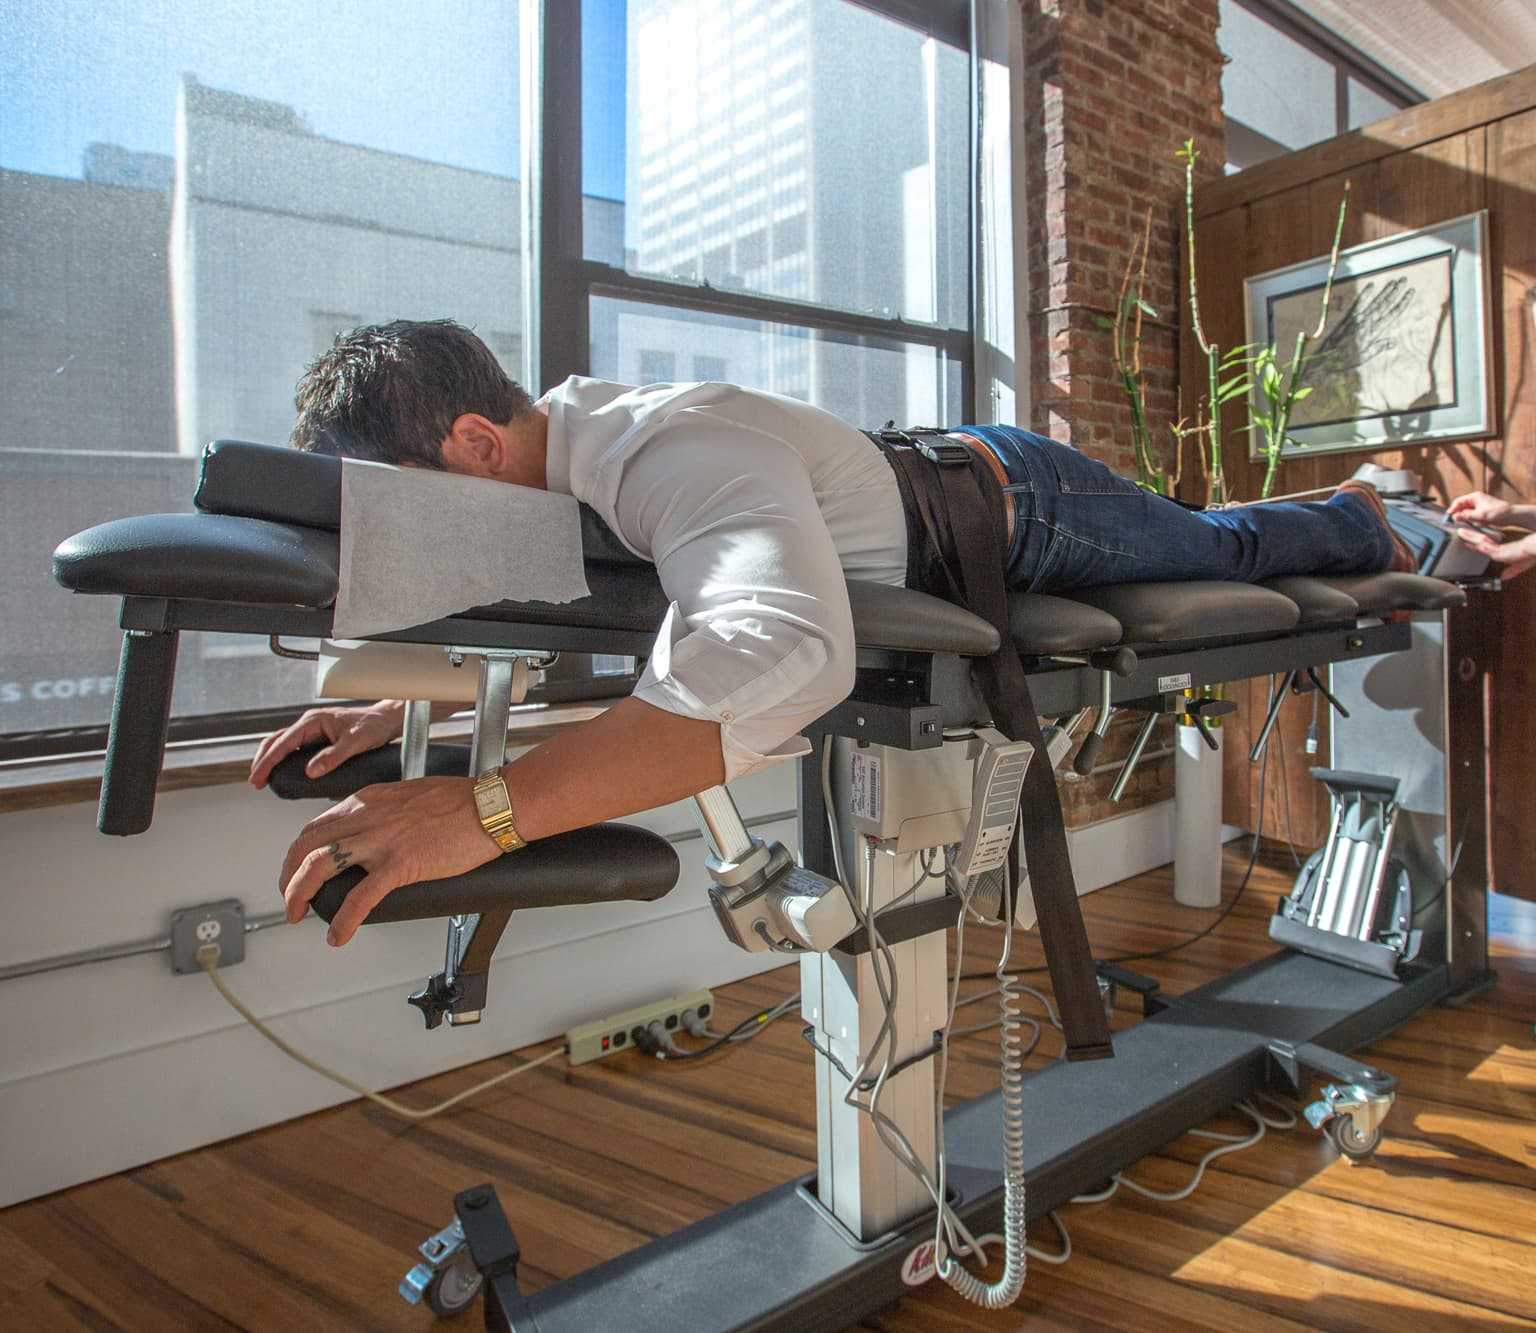 Spinal Decompression Therapy - Decompression Therapy Used to Treat Herniated Discs, Bulging Discs, Degenerative Discs | https://physiologicnyc.com/chiropractic/